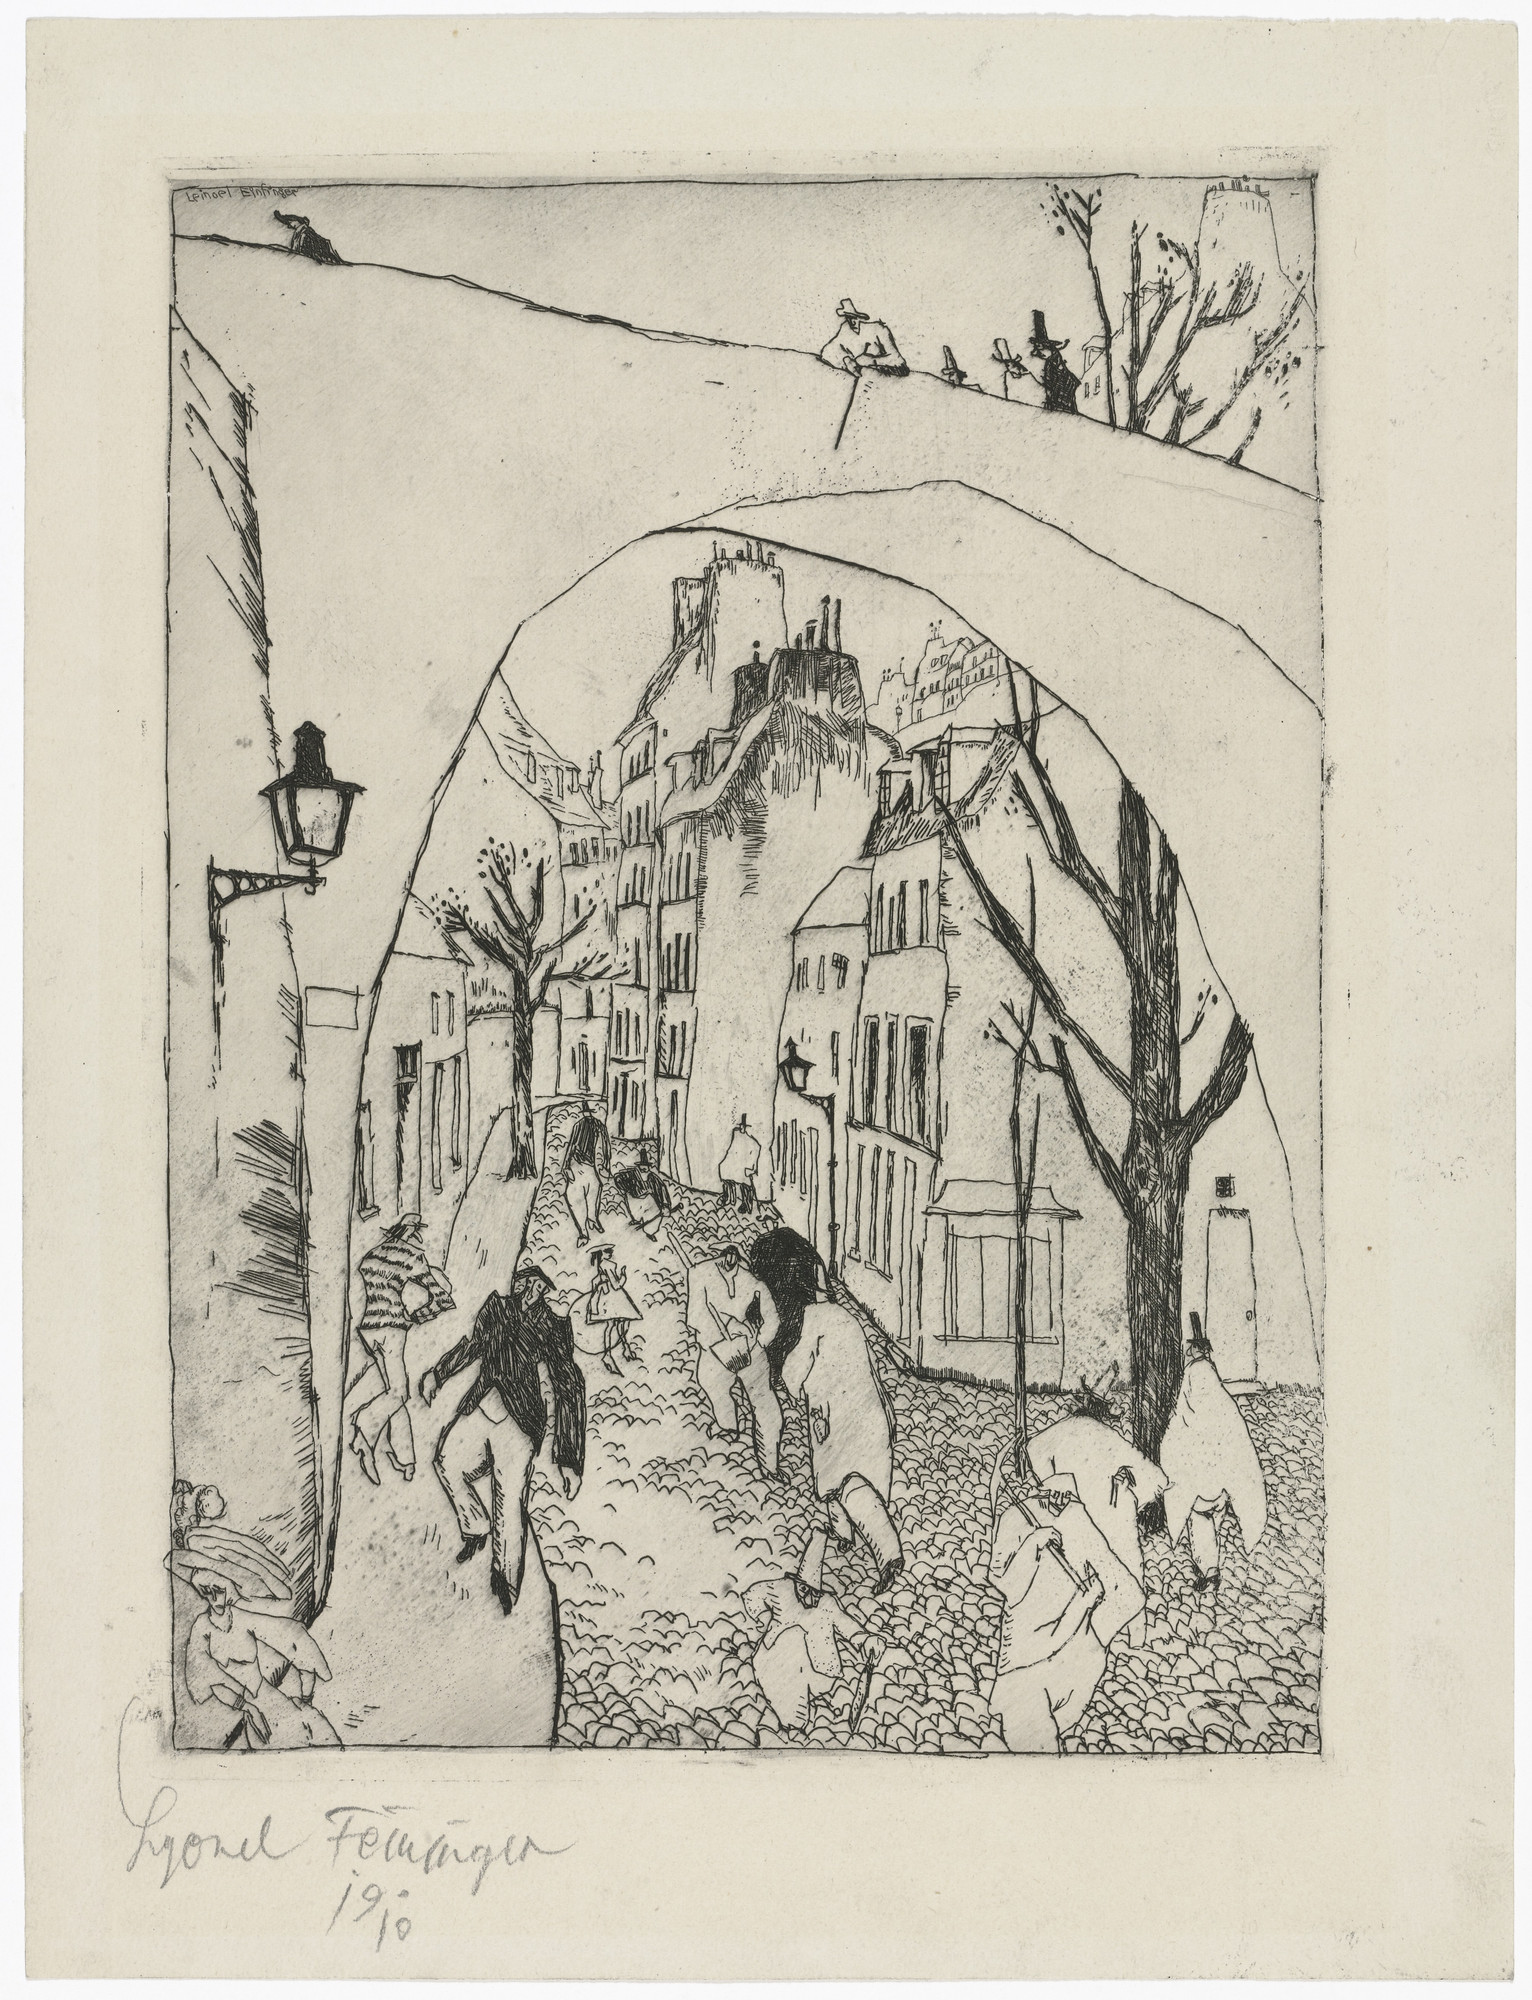 Lyonel Feininger. The Green Bridge (recto); Zirchow (verso). 1910–11 (recto); 1917–18 (verso)